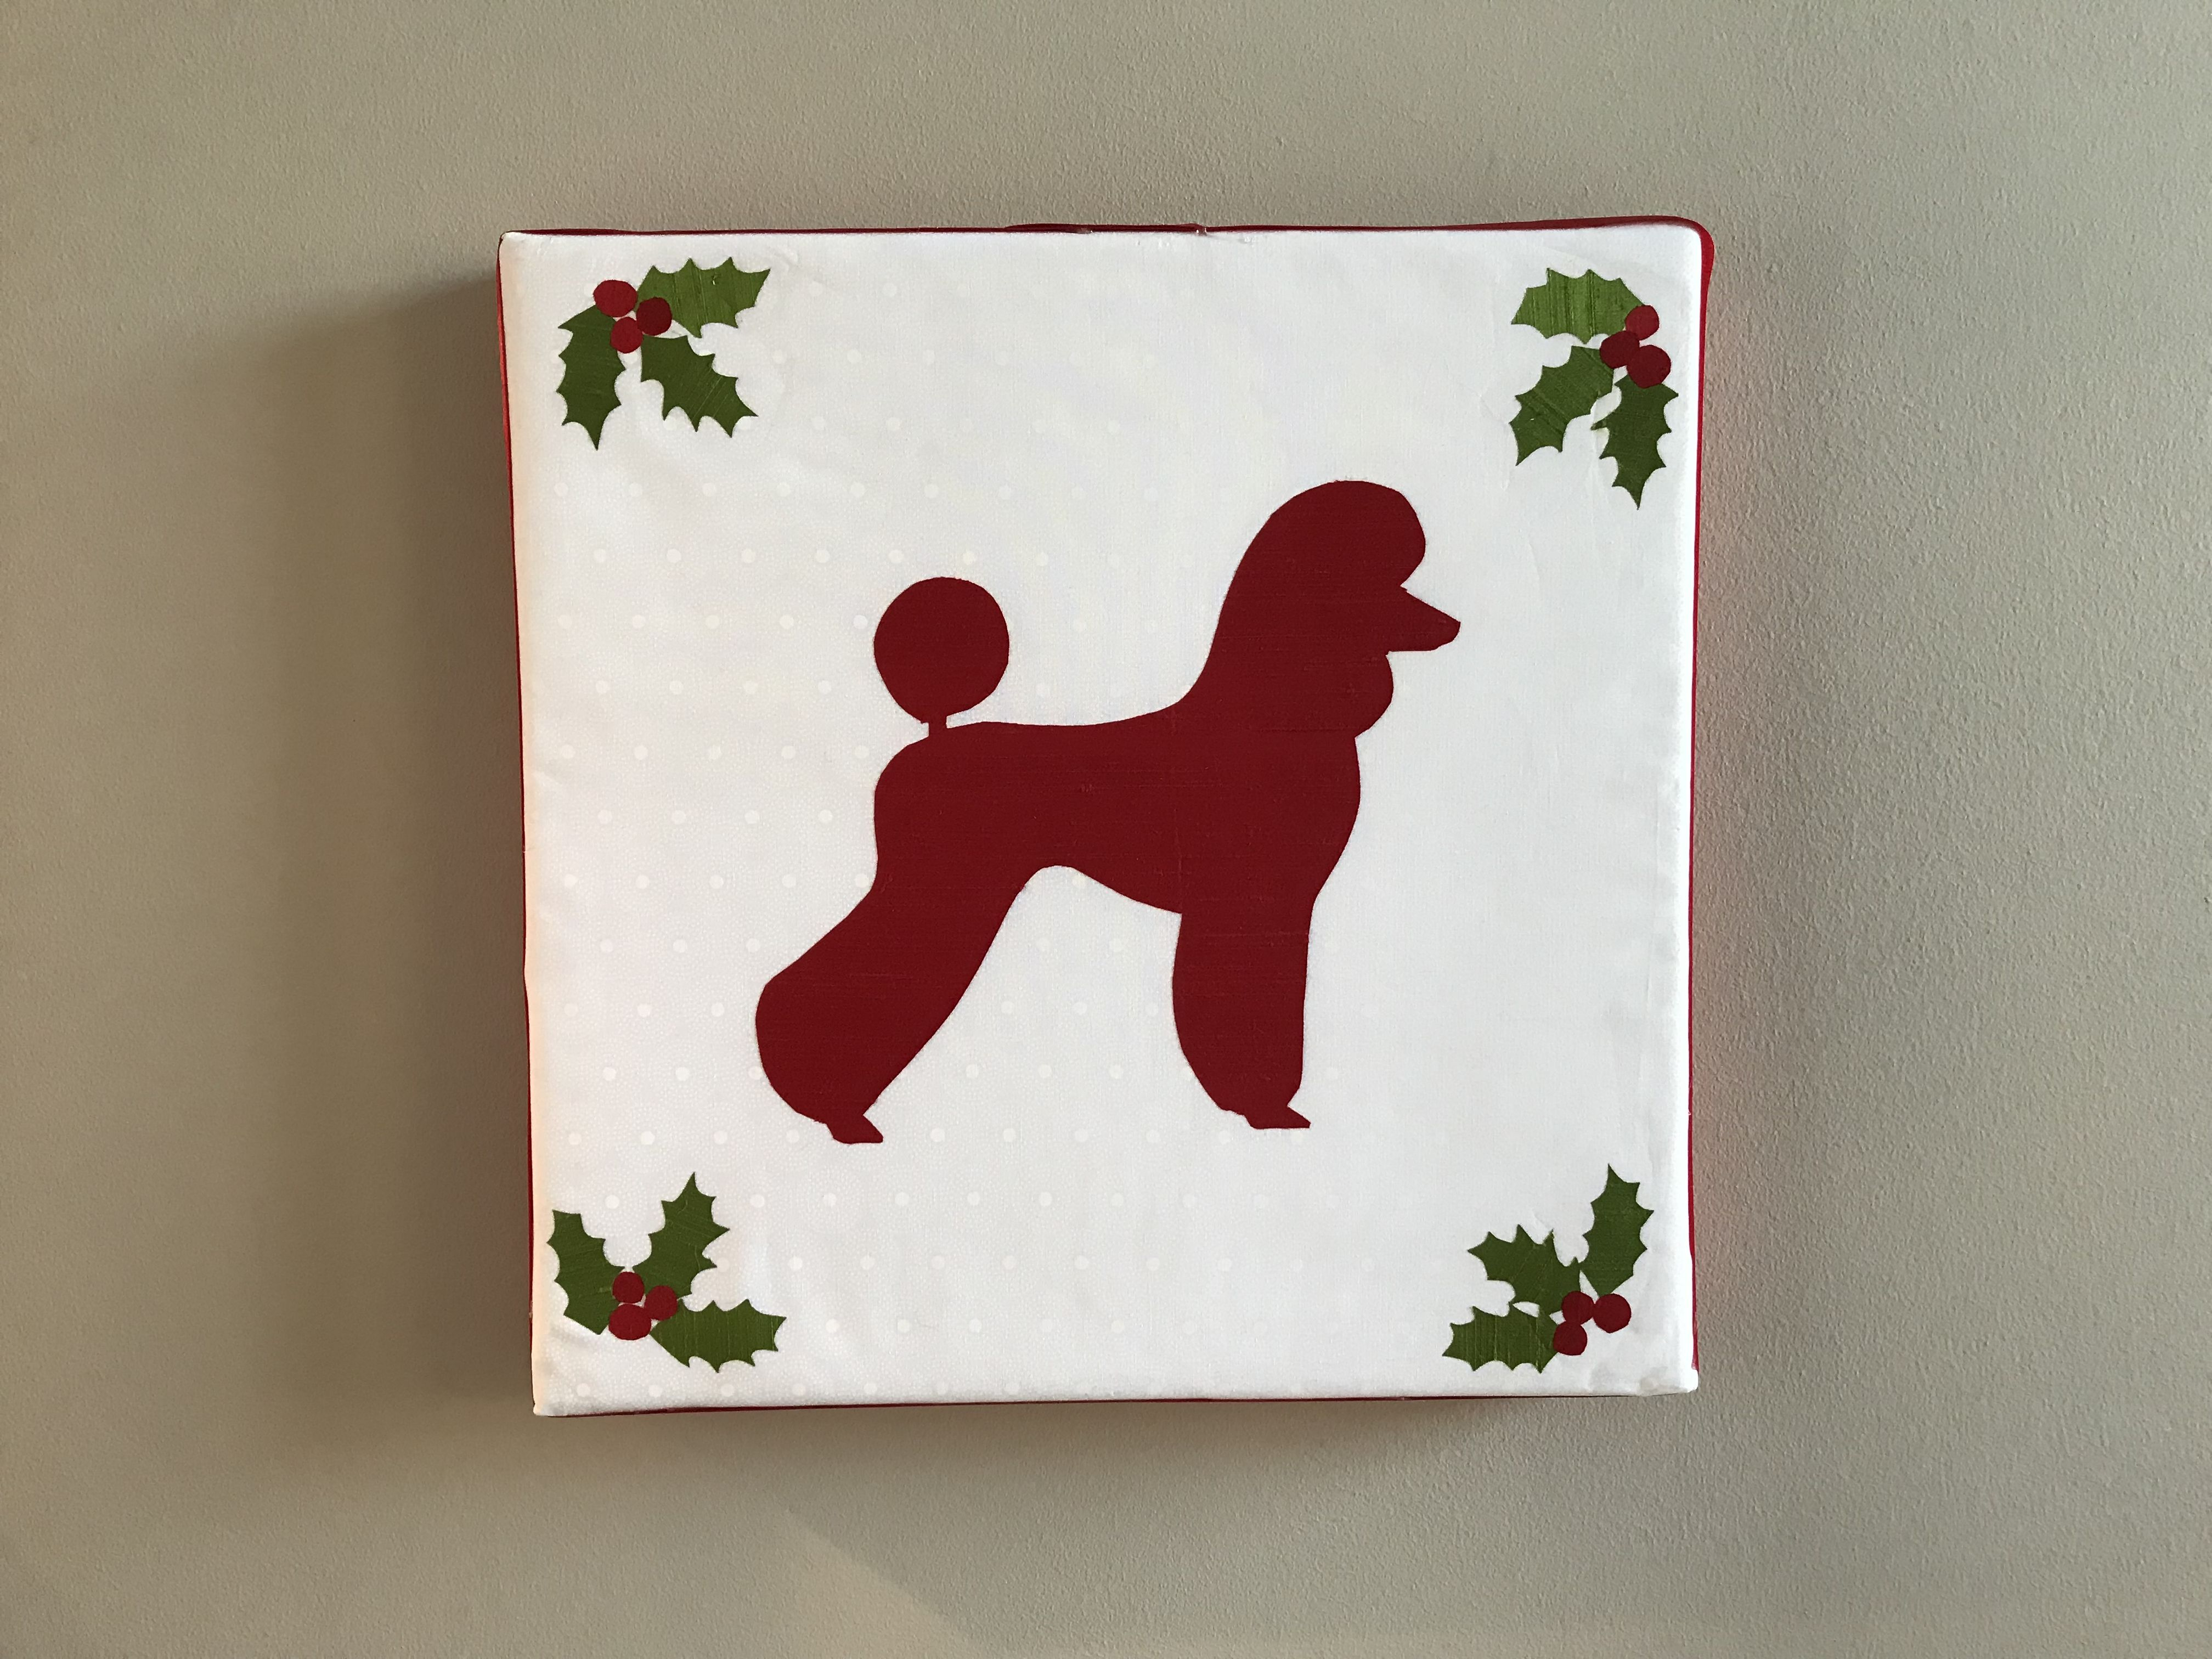 Poodle Silhouette In Red Silk On White On White Cotton Stretched Over Batting And Art Canvas For Simple Holiday Decor Poodle Simple Holiday Decor Doggy